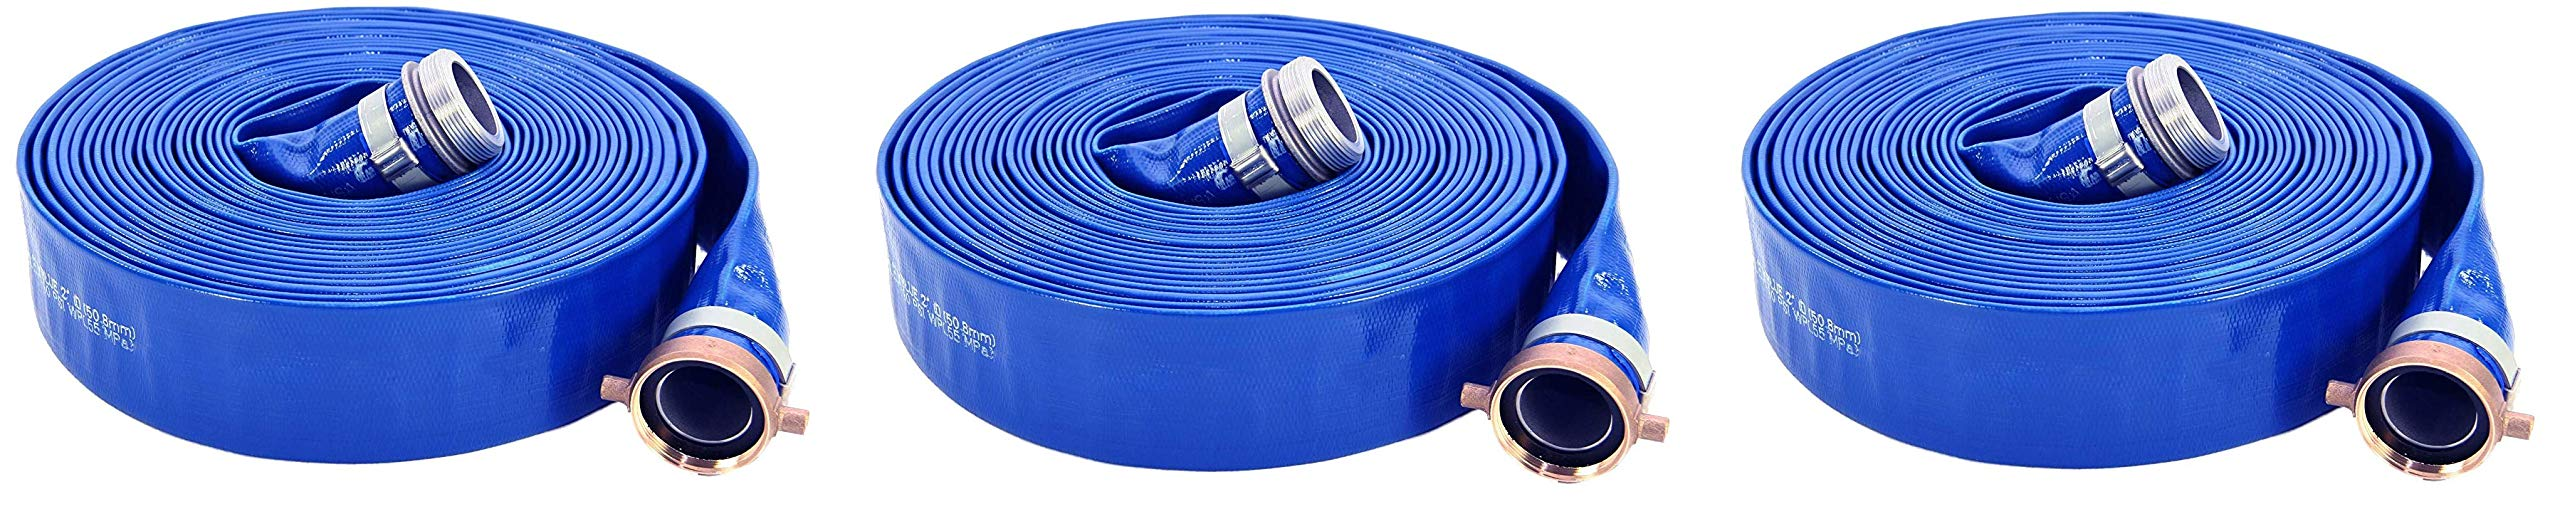 Abbott Rubber PVC Discharge Hose Assembly, Blue, 2'' Male X Female NPSM, 65 psi Max Pressure, 50' Length, 2'' ID (3, 1) by Abbott Rubber